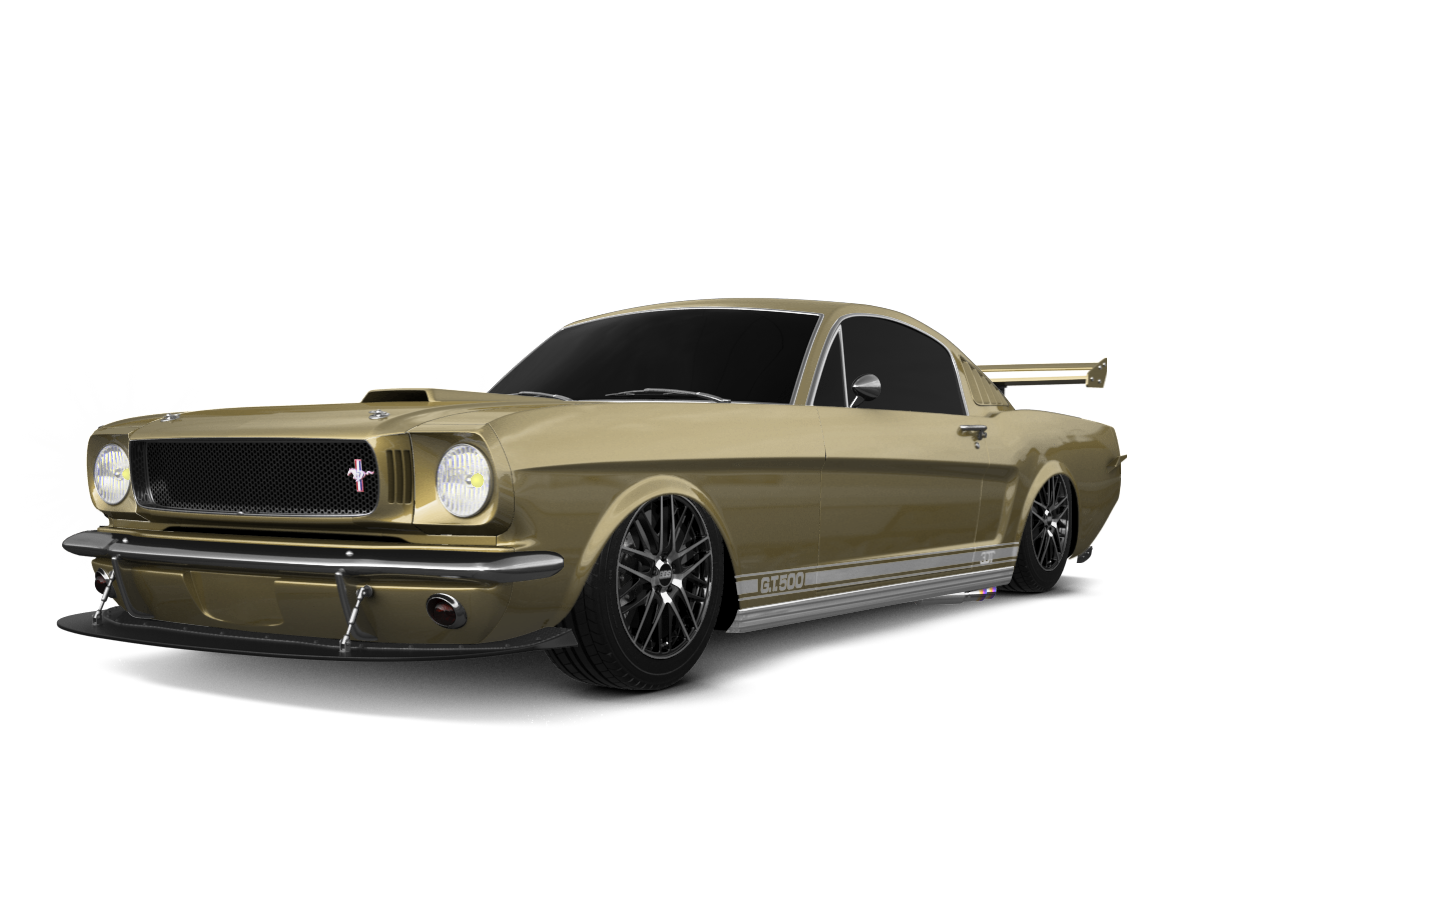 Ford Mustang Fastback 1964 tuning